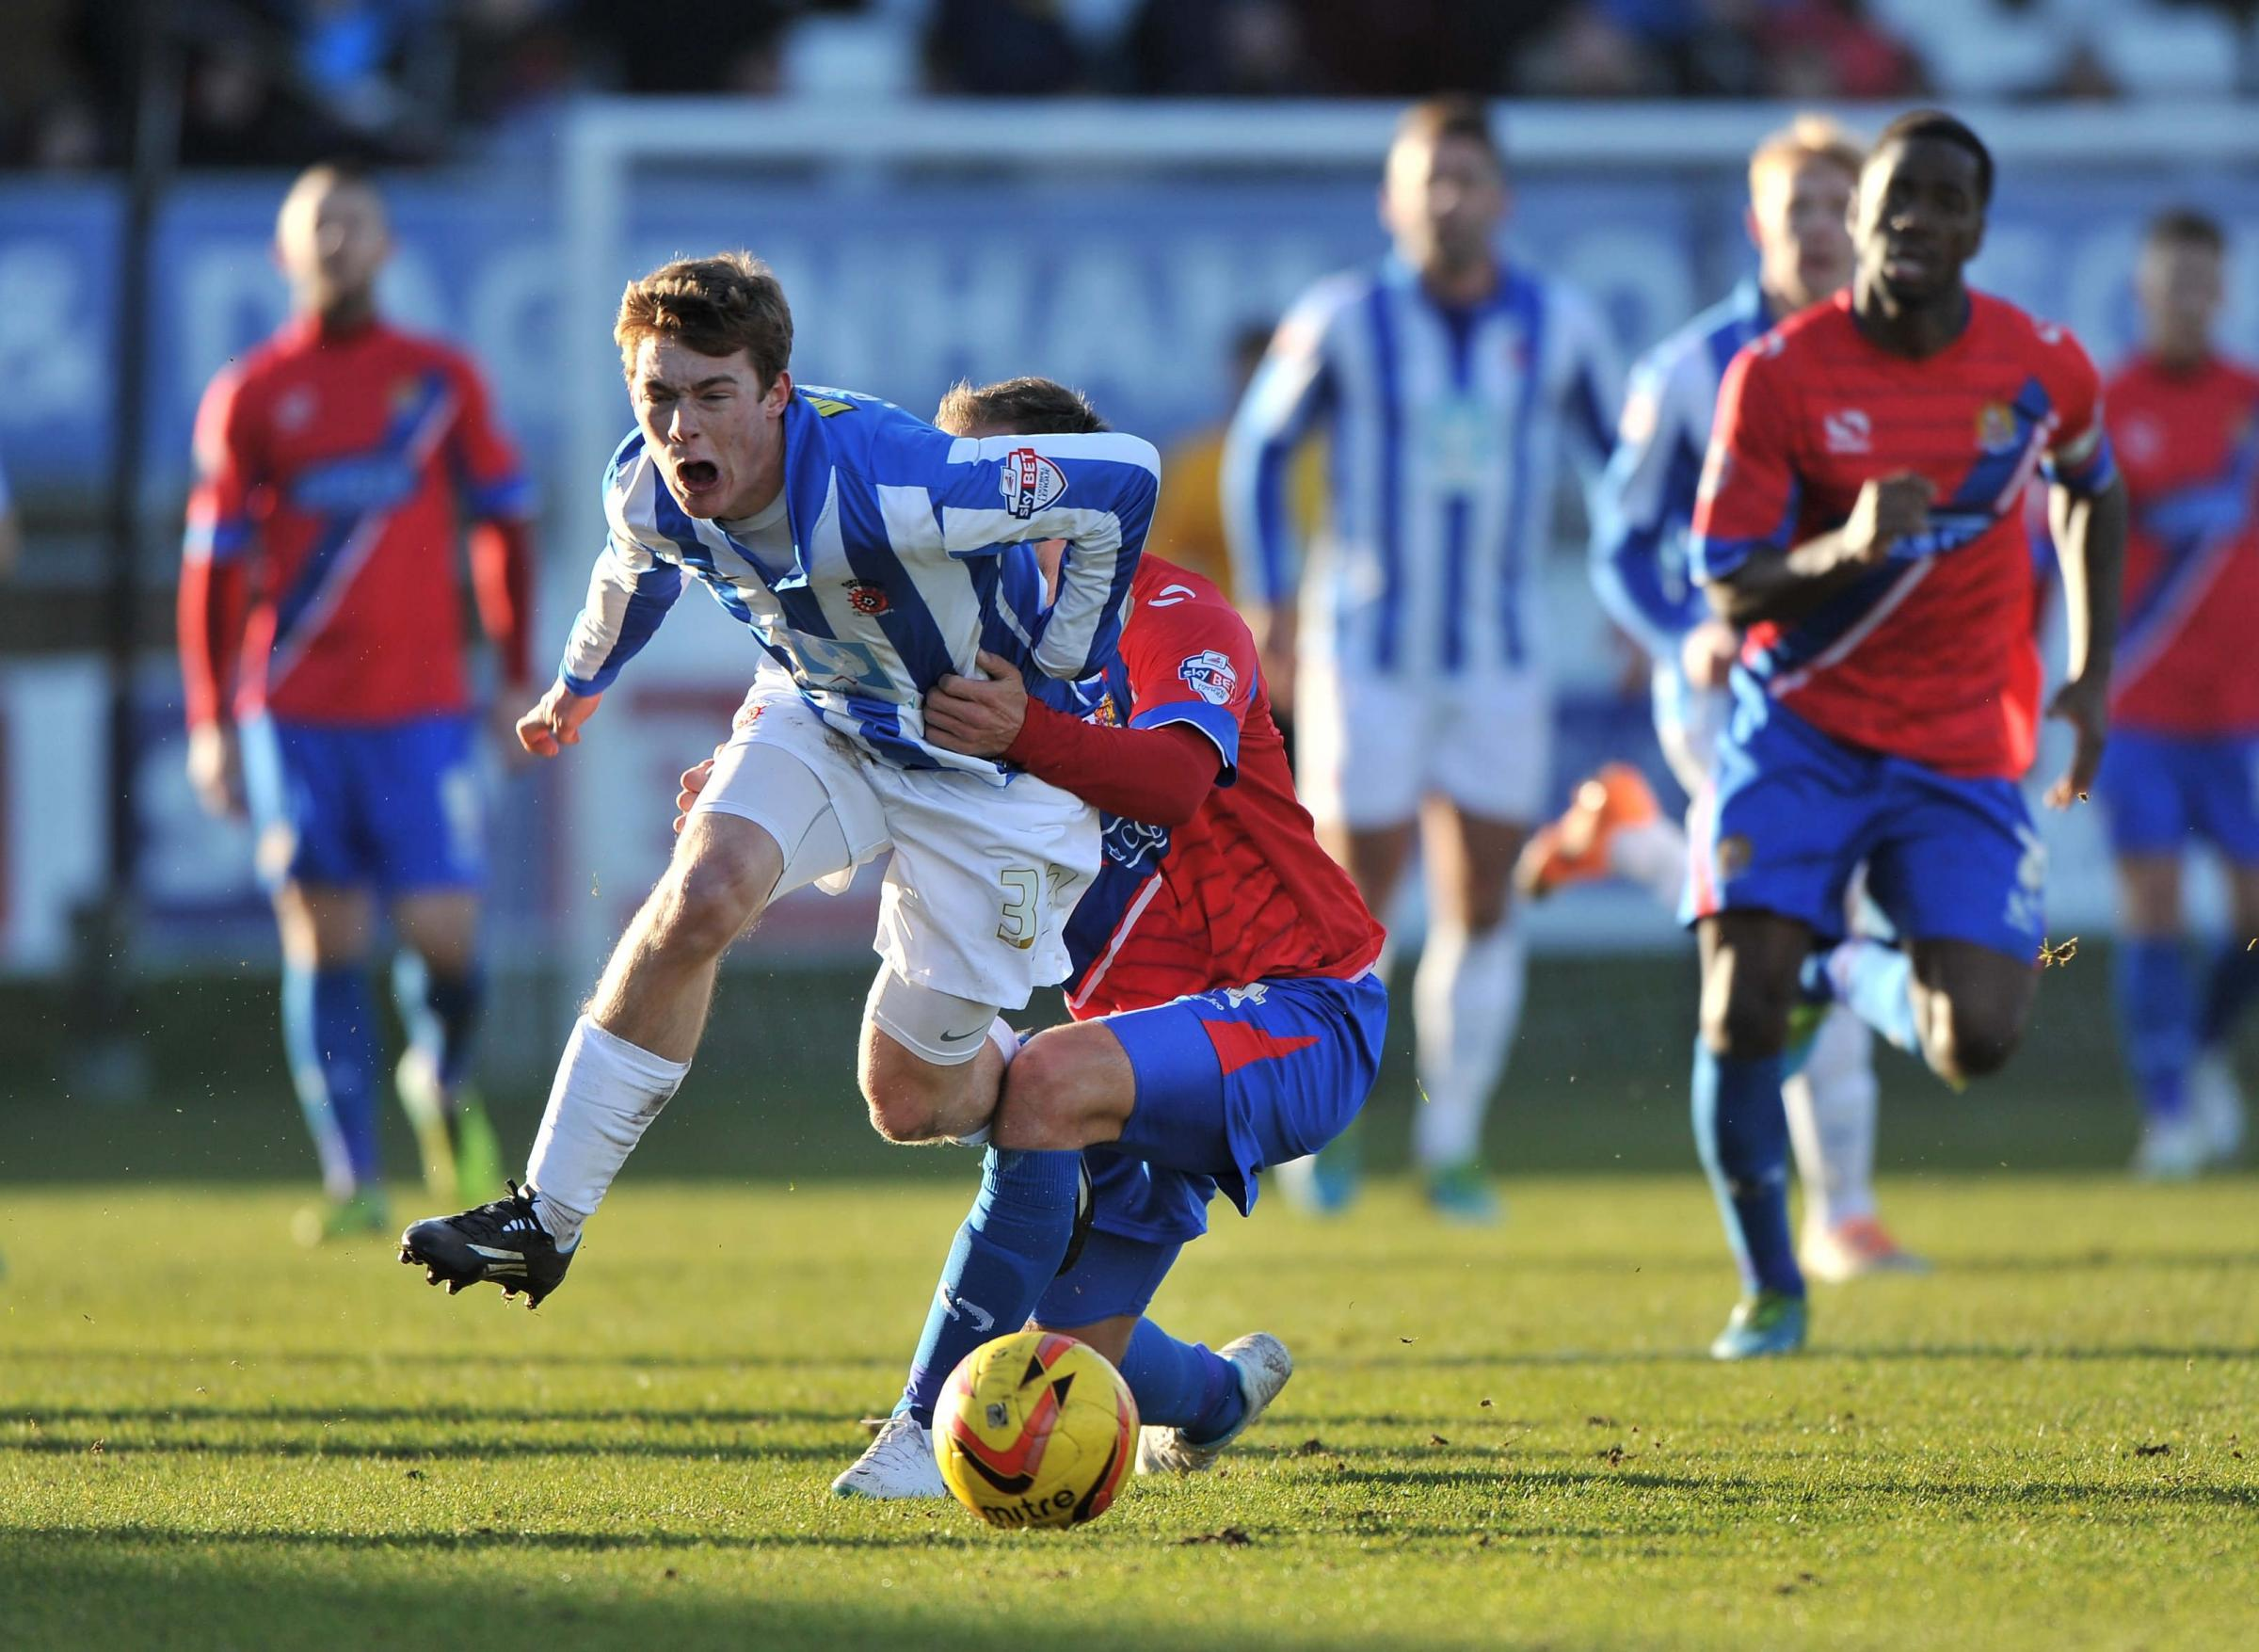 PULLED BACK: Luke James is fouled by Scott Doe, of Dagenham and Redbridge